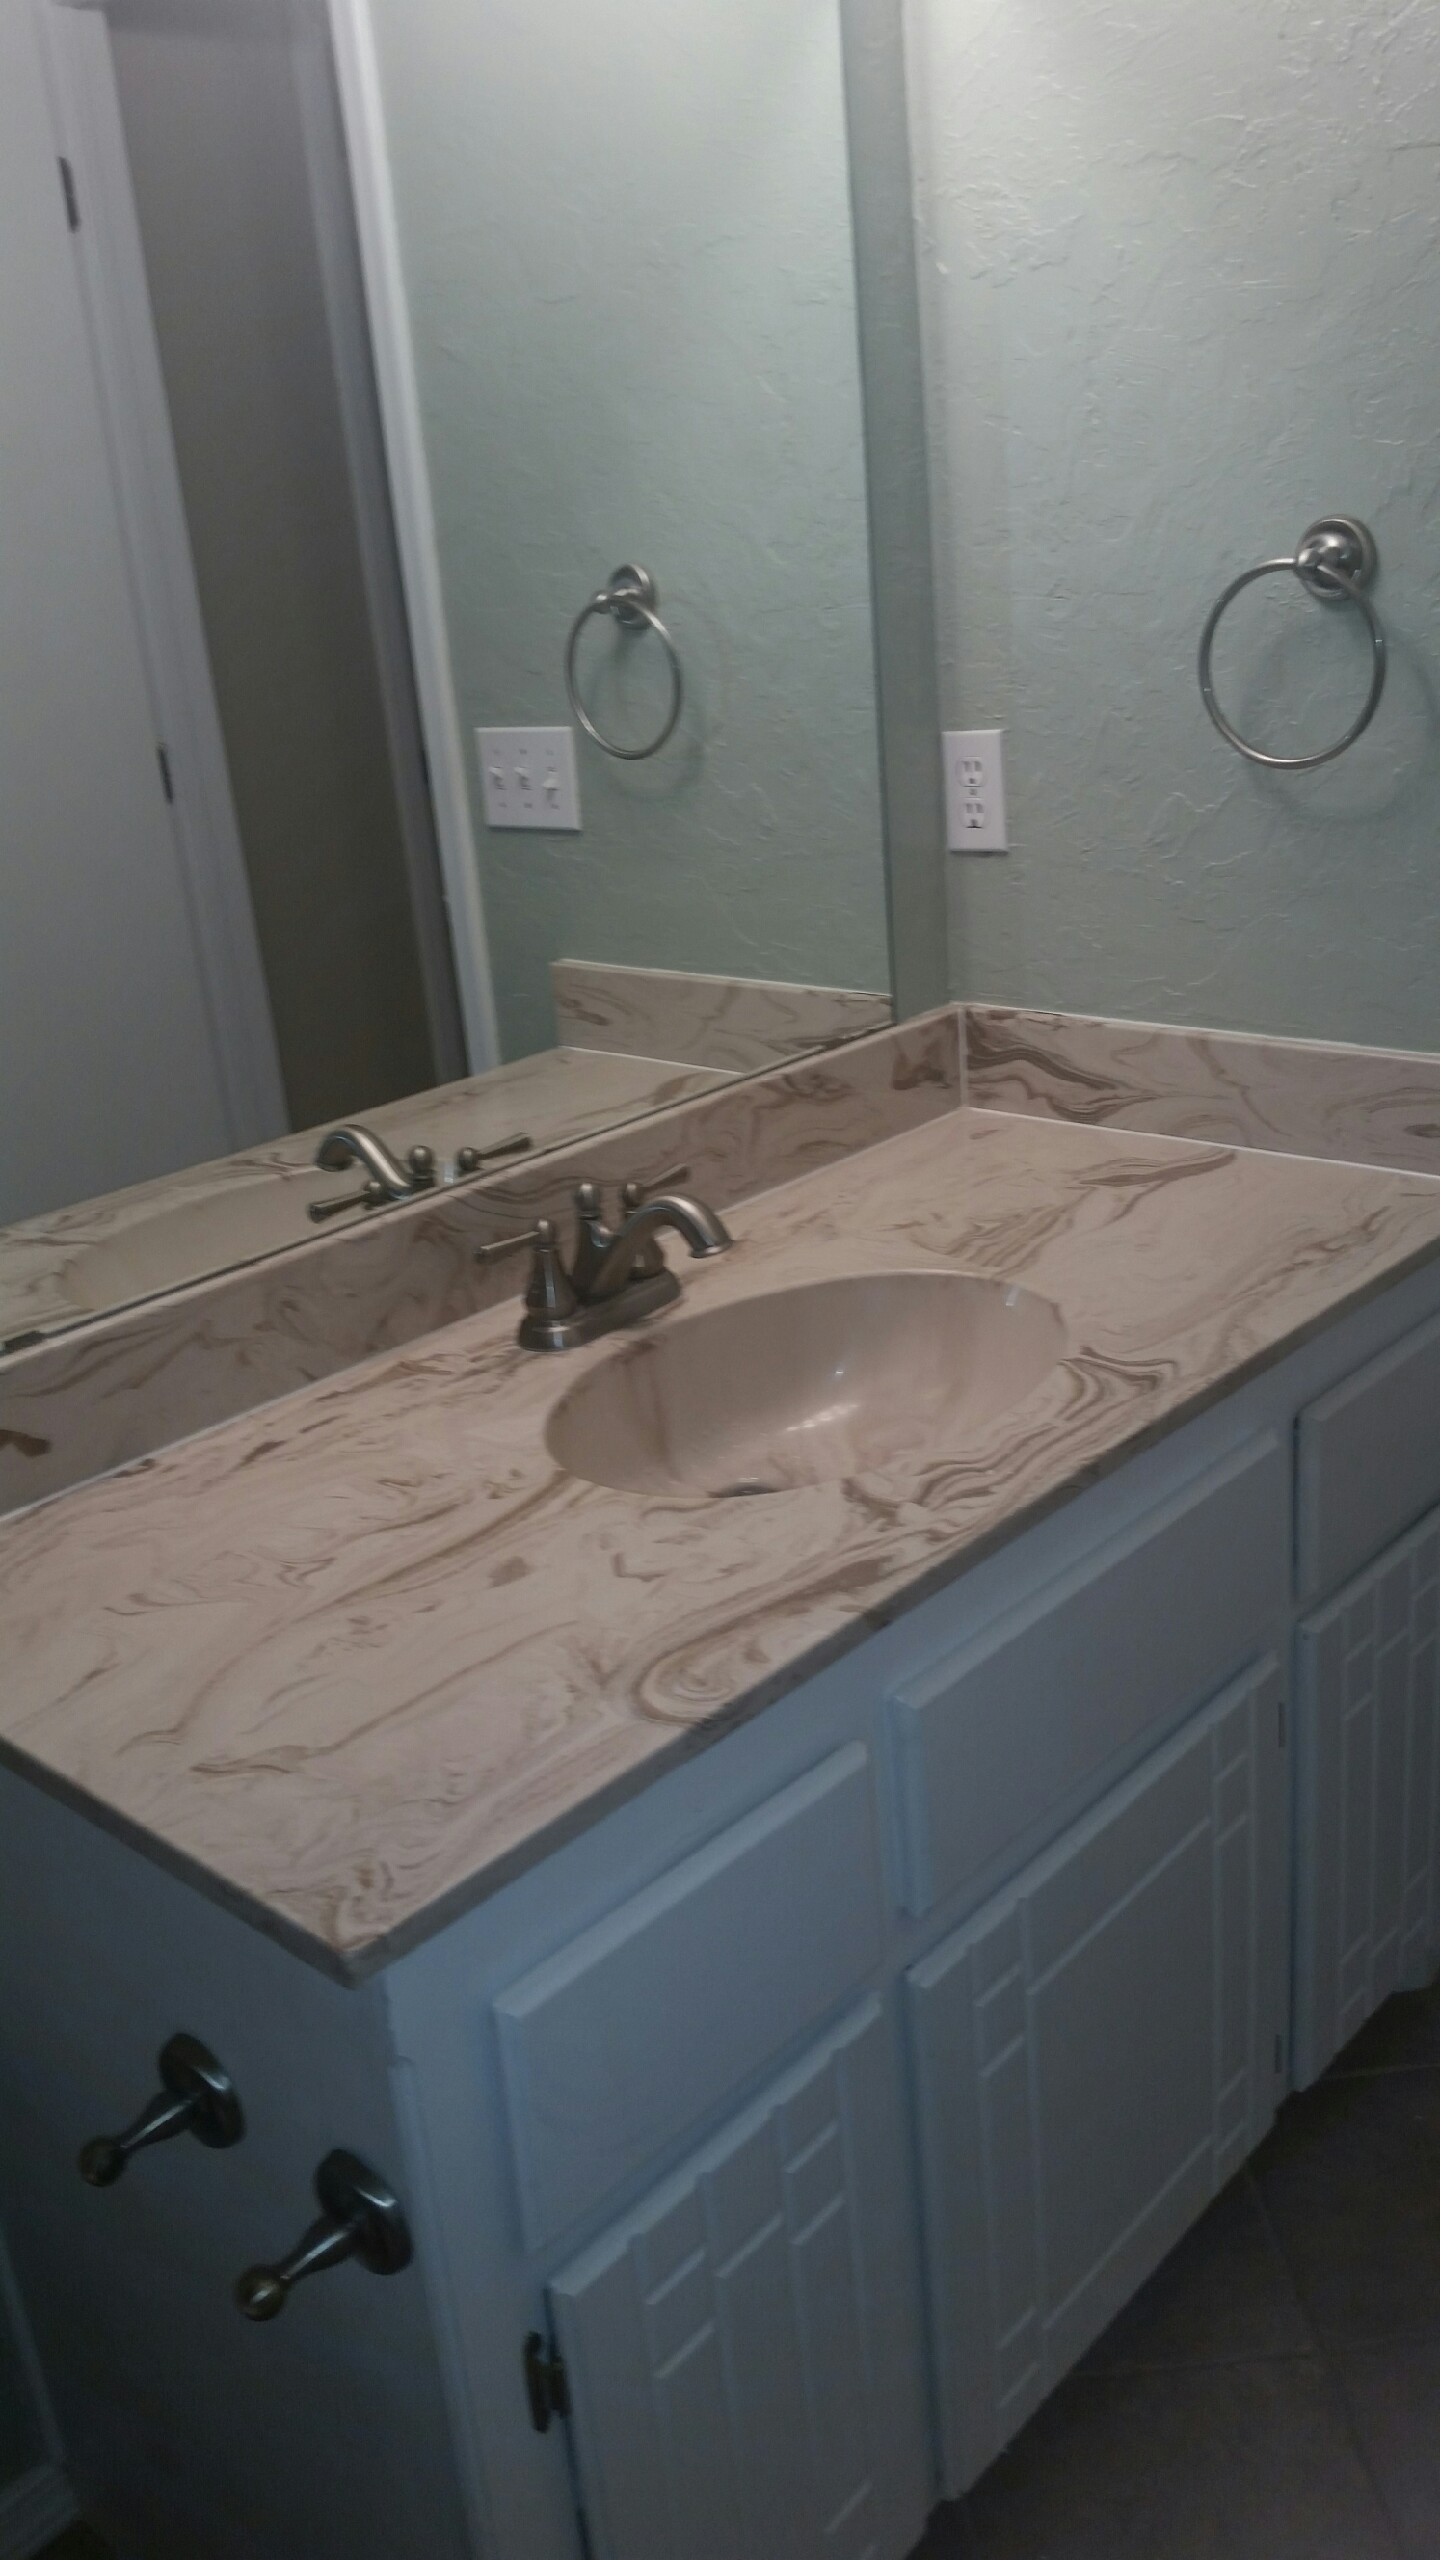 Bathroom Sinks Okc rent to own homes south oklahoma city - key properties okc sells